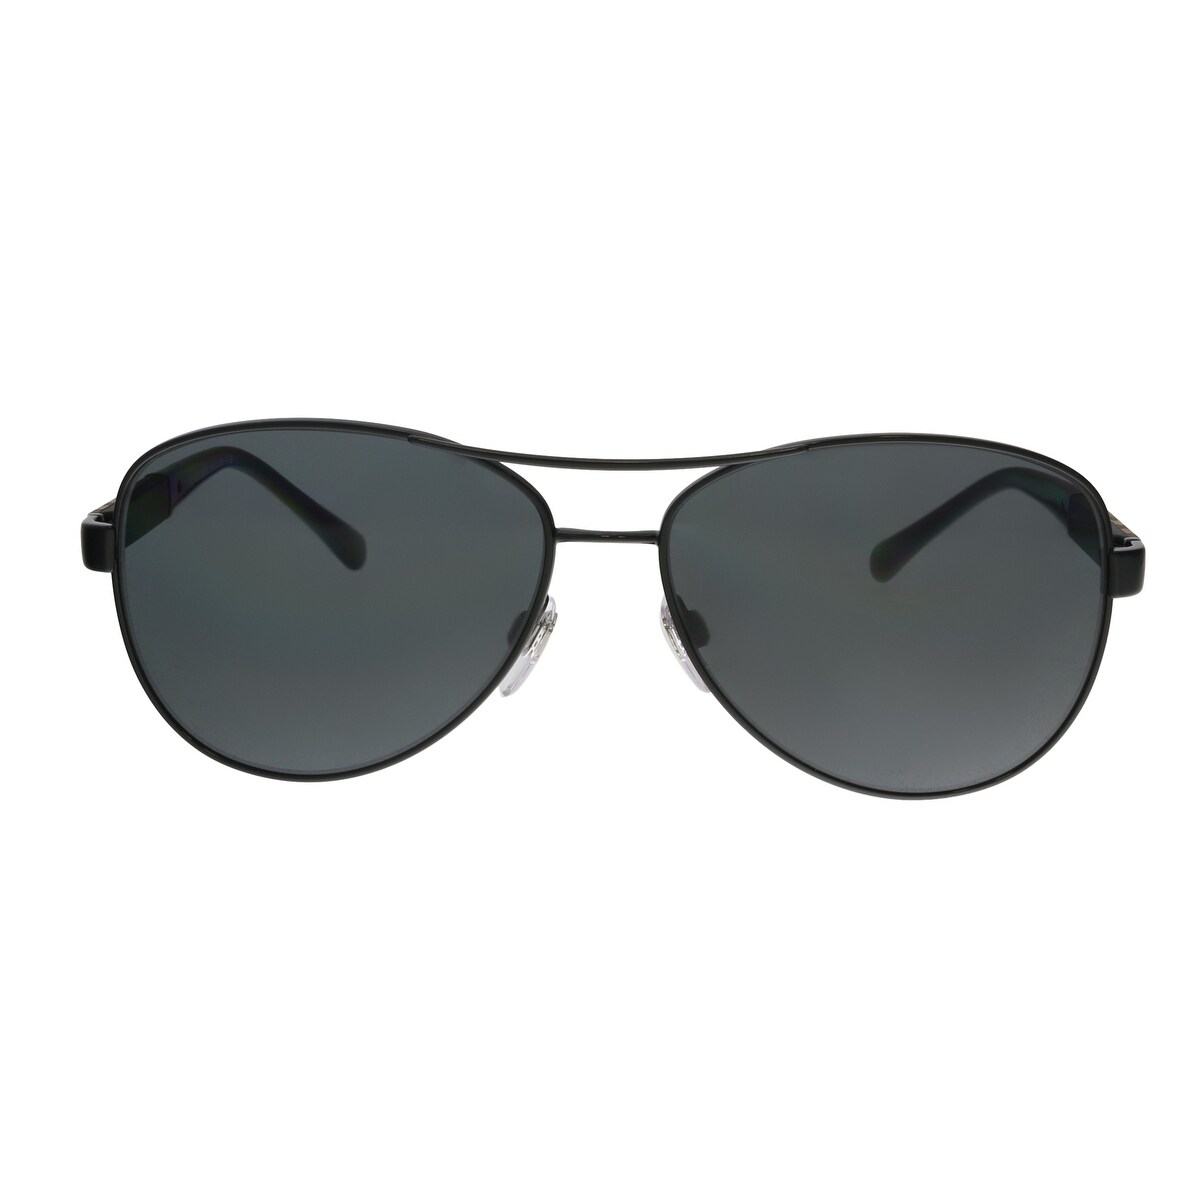 67a5f7cb147 Shop Burberry BE3080 100187 Black Aviator Sunglasses - 59-14-135 - Free  Shipping Today - Overstock - 25558363